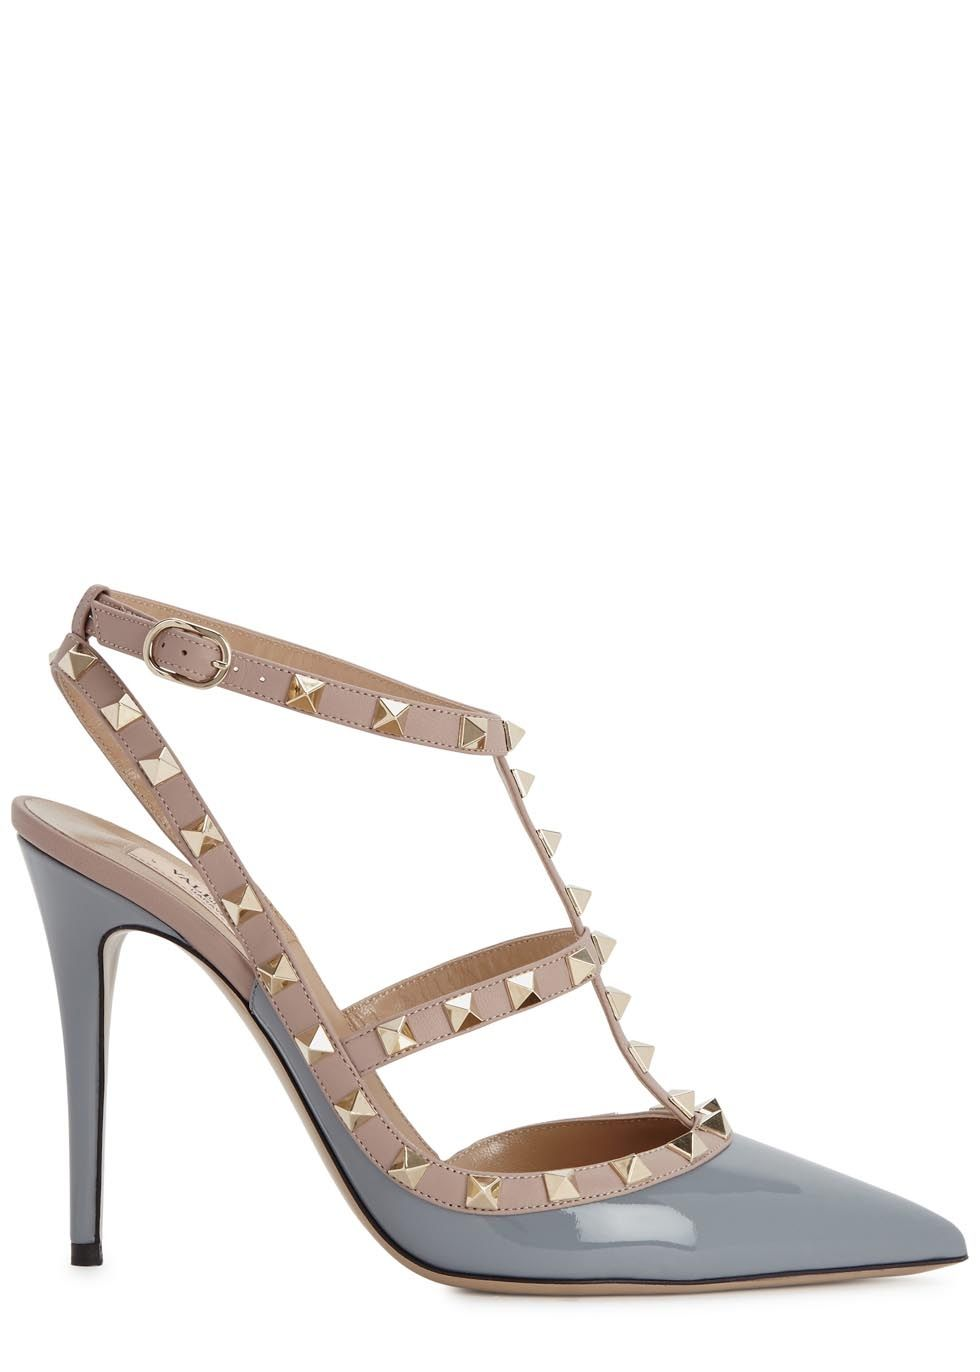 beb60d911b9 Valentino grey patent leather pumps Heel measures approximately 4 inches   100mm Pale gold stud embellishments